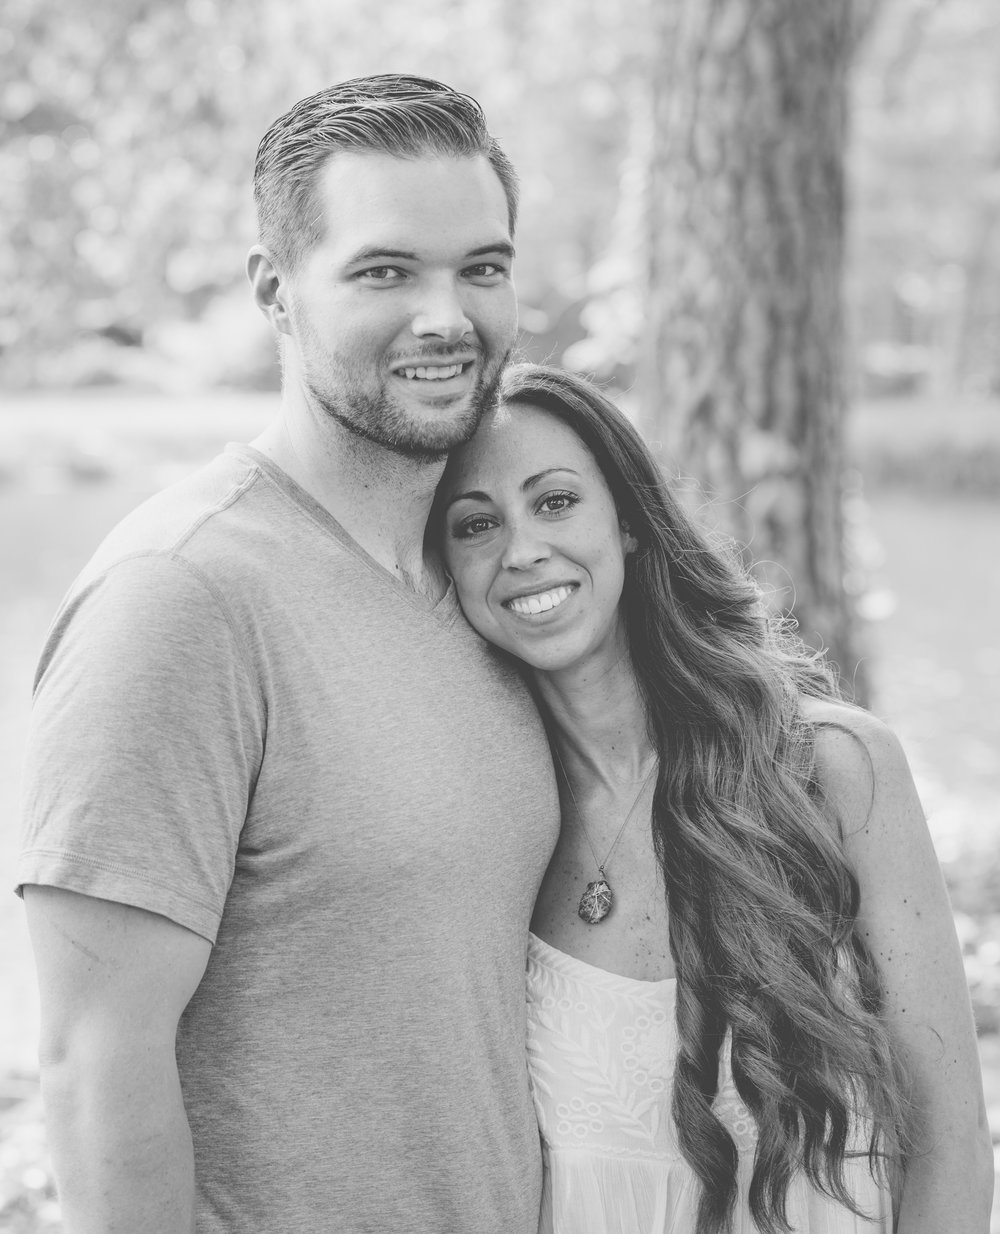 Dr. Zach and Jessica Thomas founded VIBE for the purpose of empowering you and your family to reach your full potential in mind, body, and spirit.They've created a calm, welcoming environment to help you process the challenges you face every day. - Come Visit UsYOUR TRIBE IS WAITING!